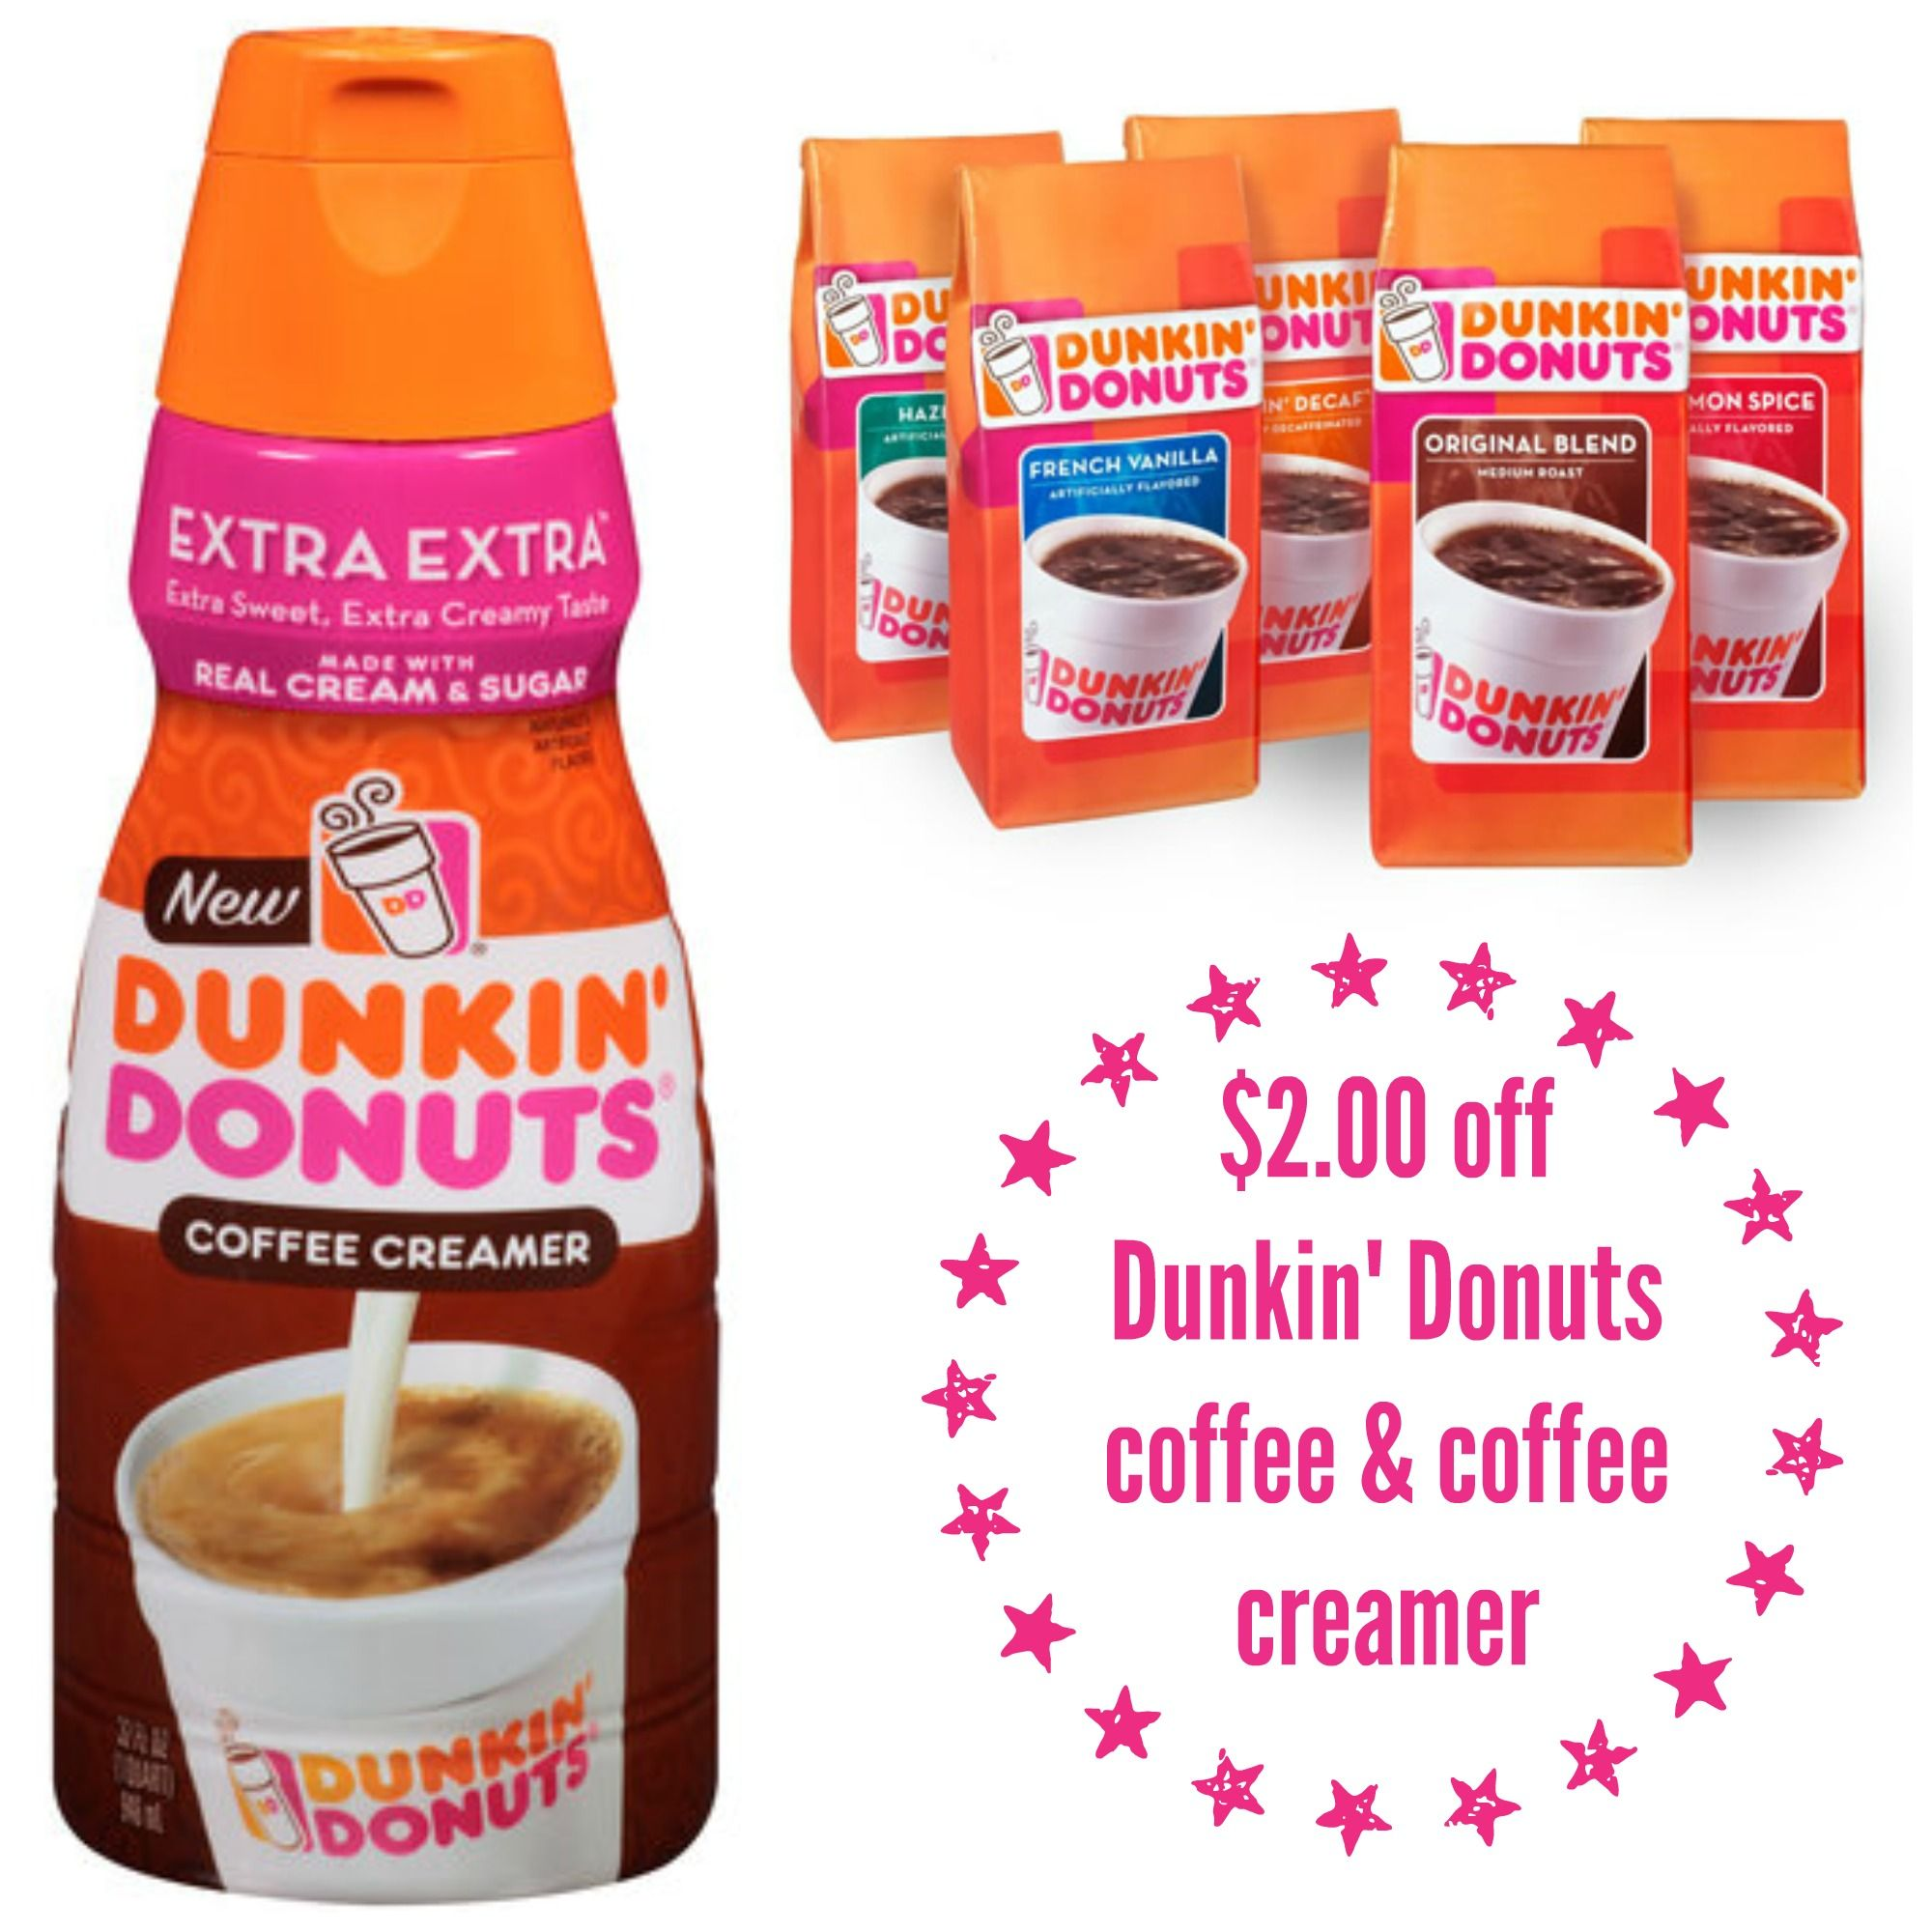 2.00 off Dunkin' Donuts coffee & coffee creamer Coupon